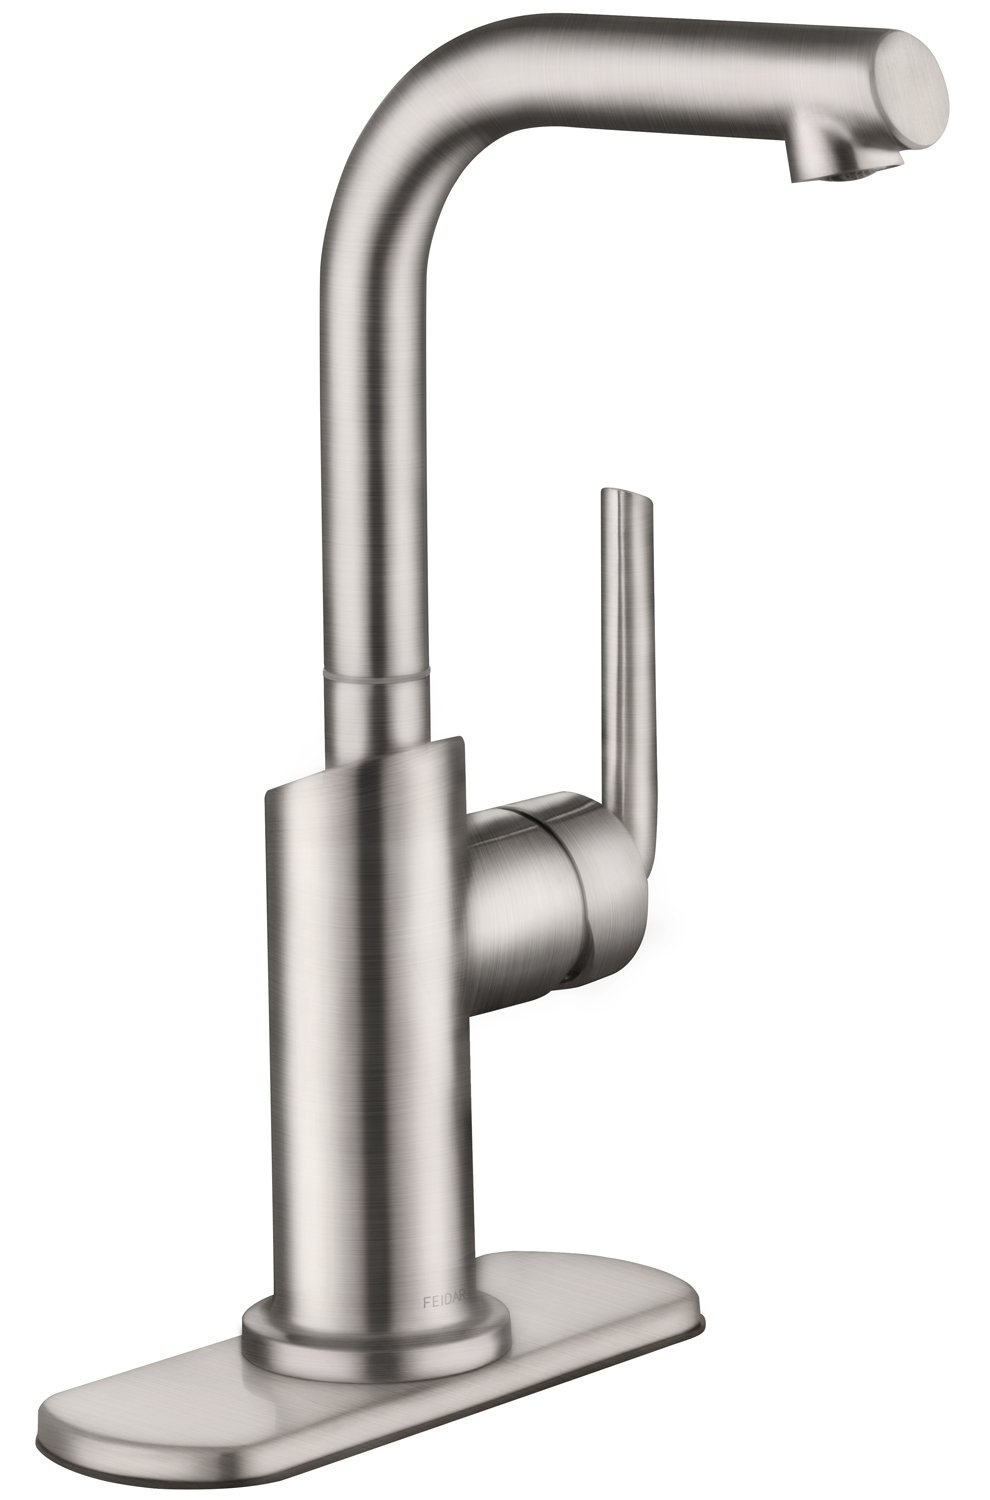 FEIDAR 360 Degree Swivel Single Handle Bar/Prep Faucet with Contemporary Design, Stainless Steel